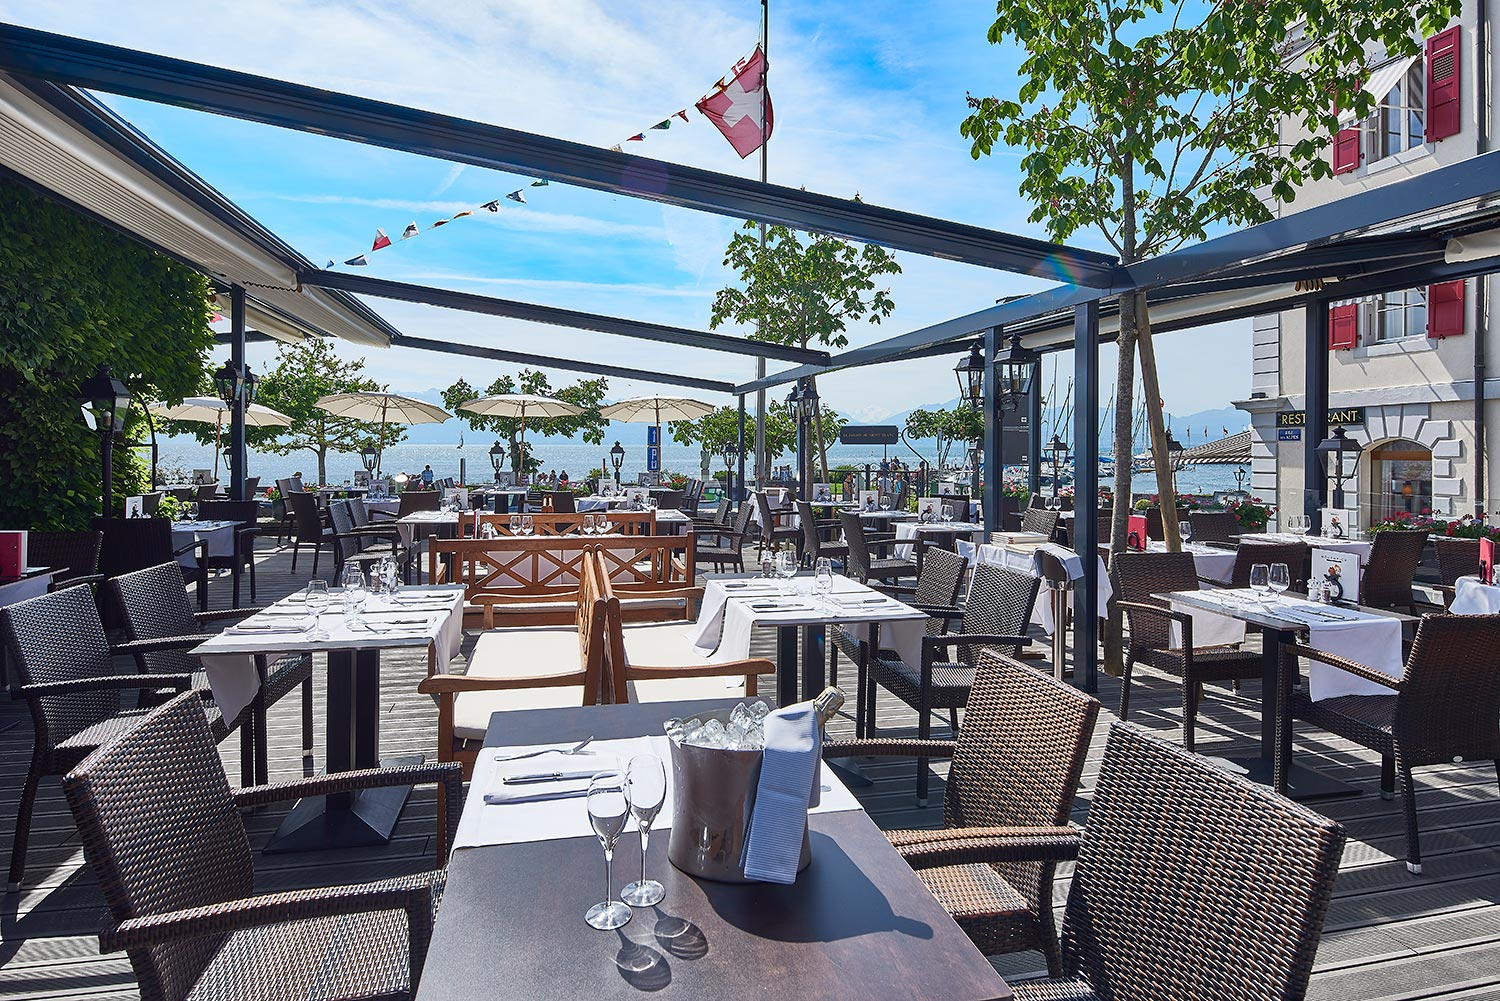 RESTAURANT in MORGES mit TERRASSE am SEE - HOTEL MORGES ...